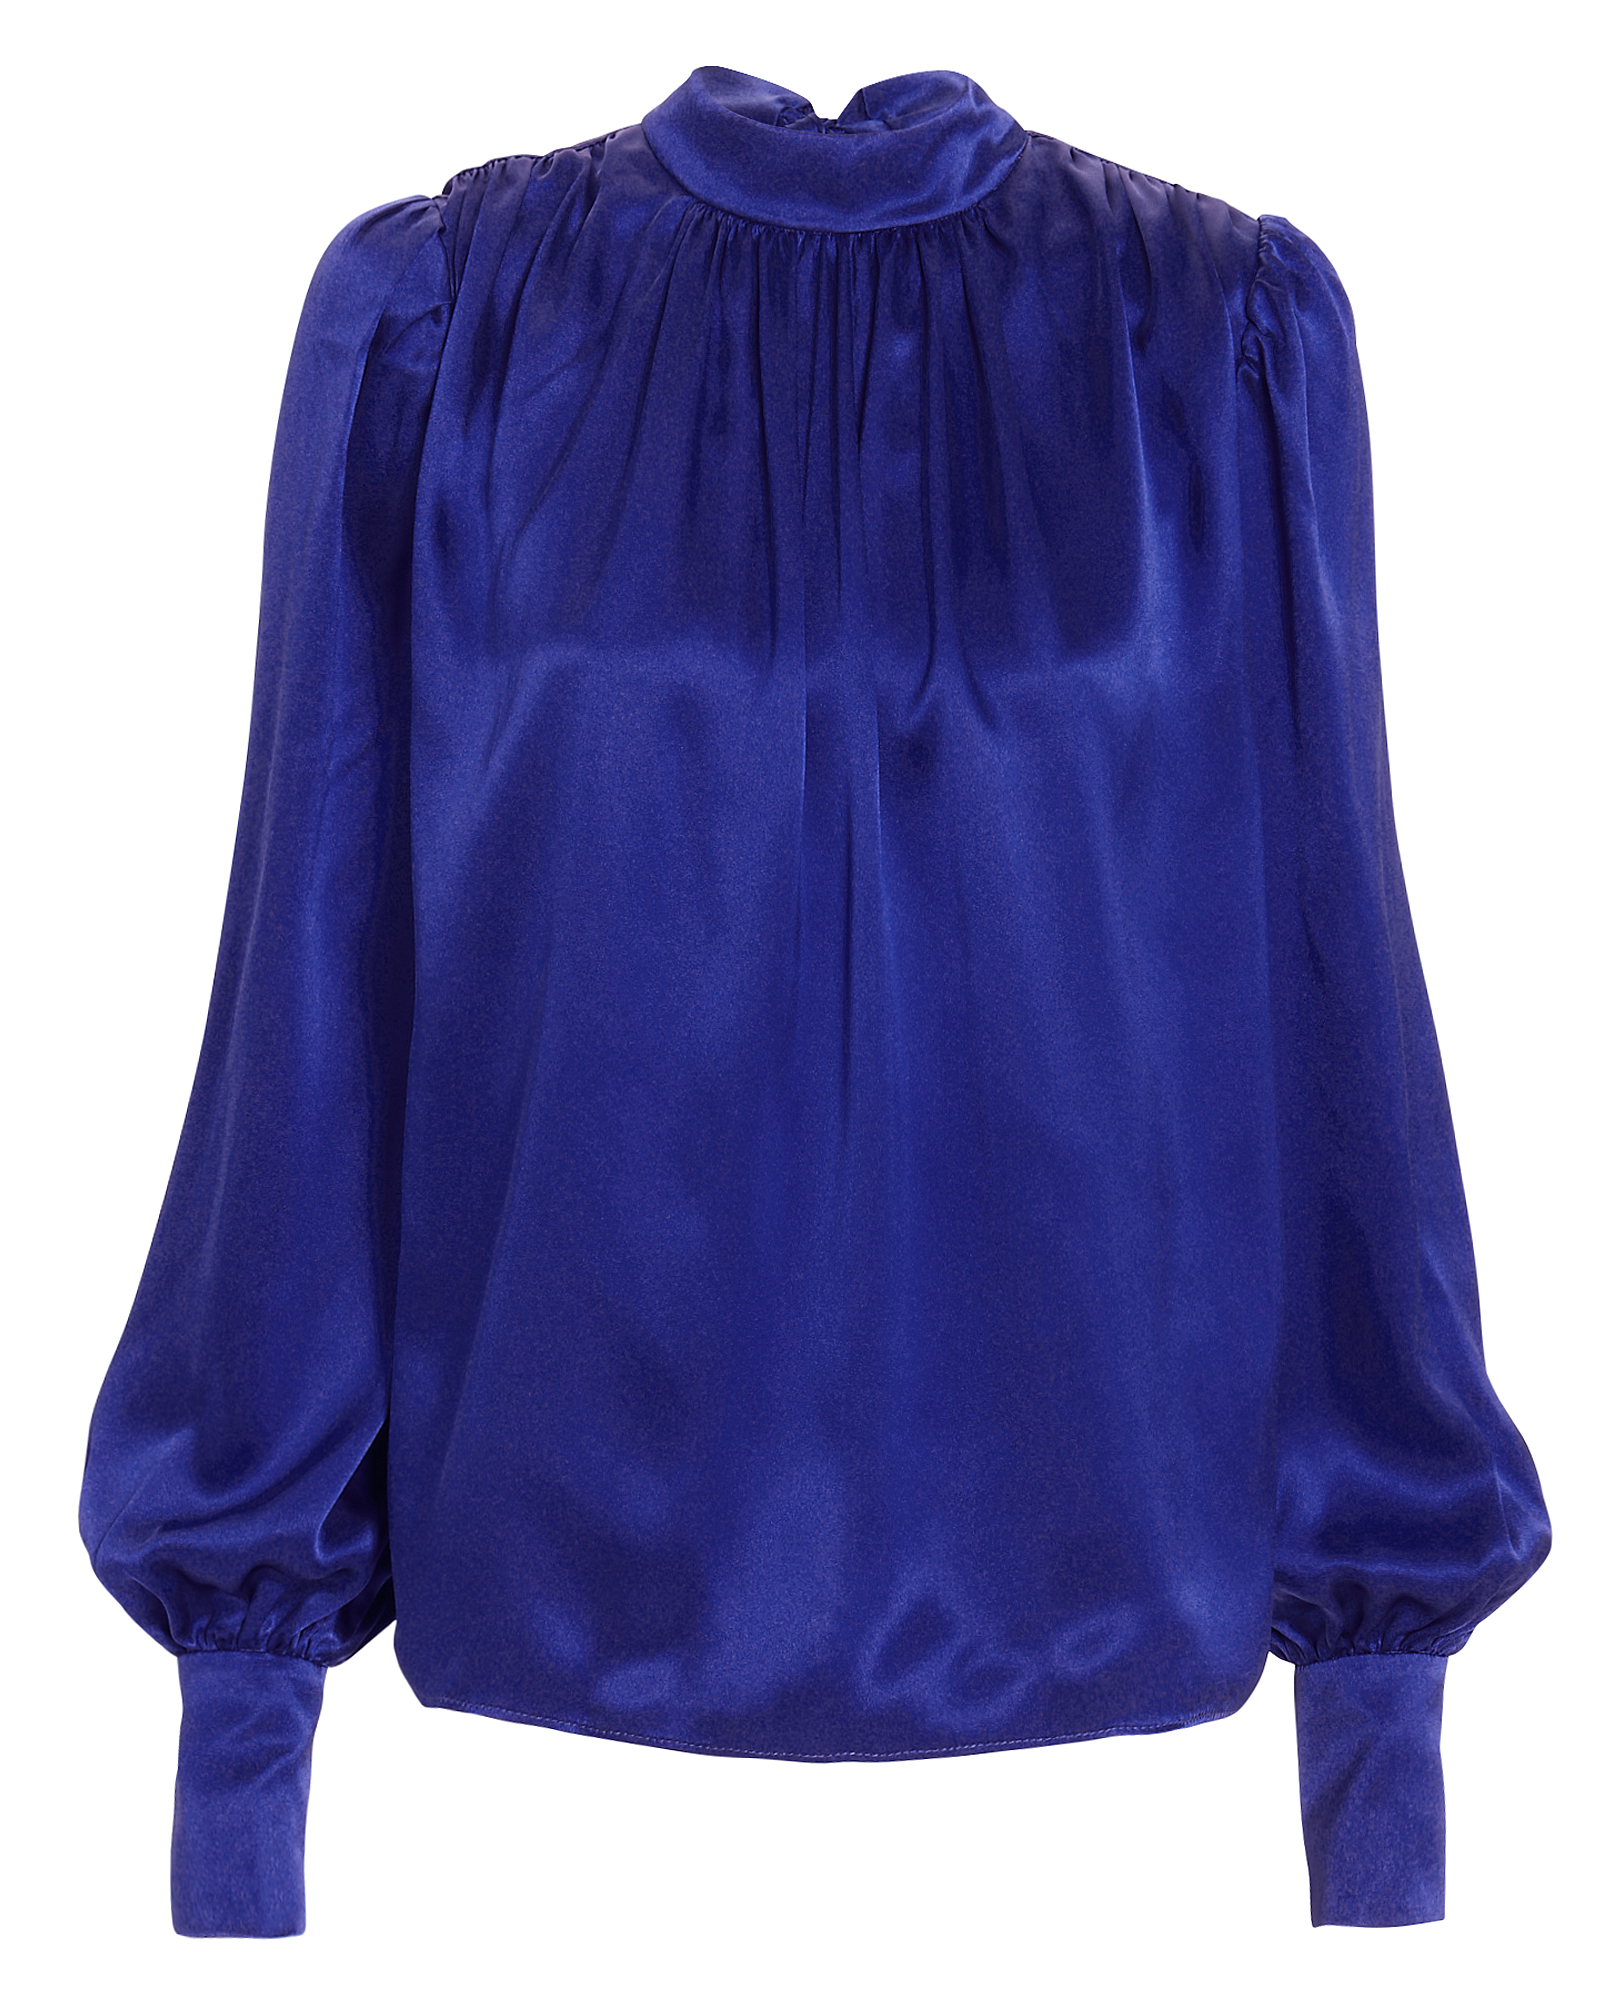 Amur Lilly Blouse